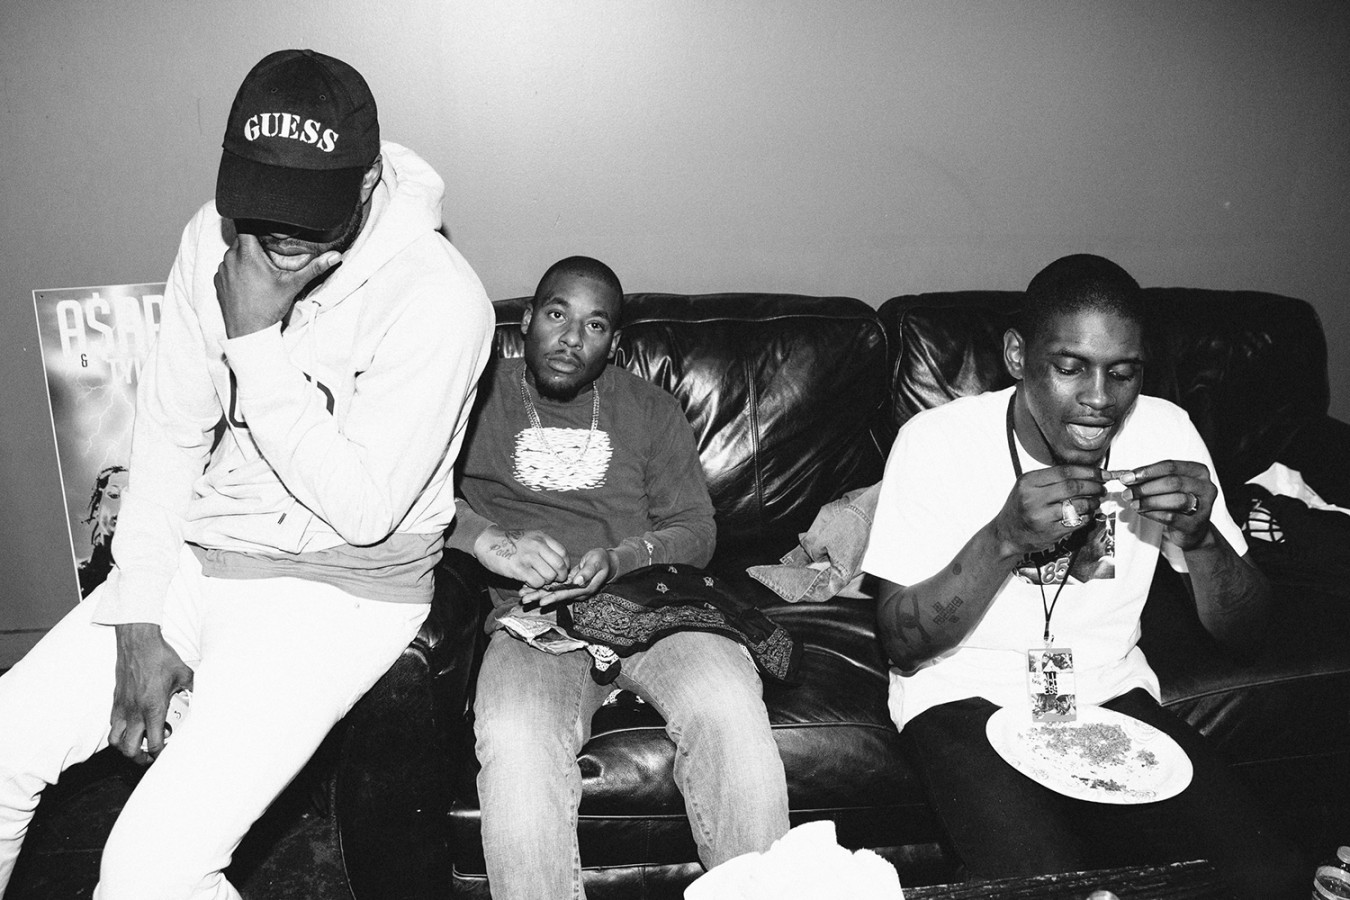 asap-rocky-tyler-the-creator-tour-backstage-06-1350x900